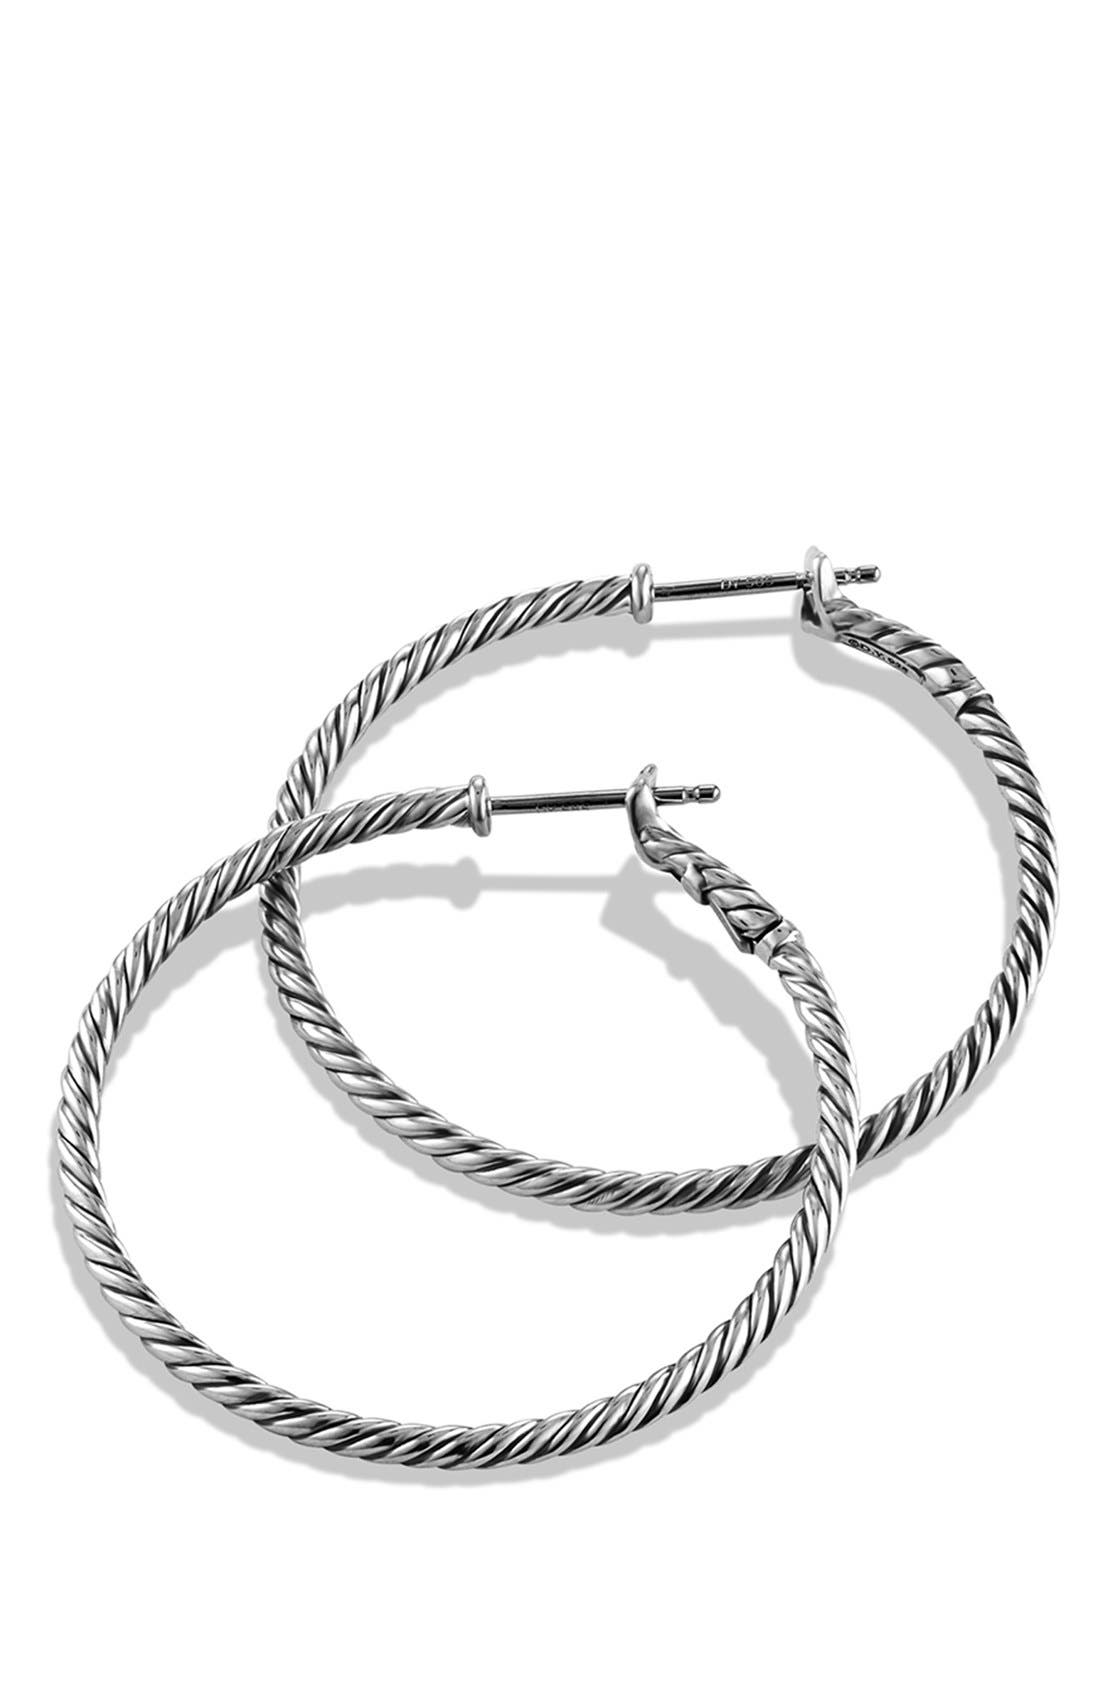 DAVID YURMAN, Cable Classics Hoop Earrings, Alternate thumbnail 3, color, SILVER